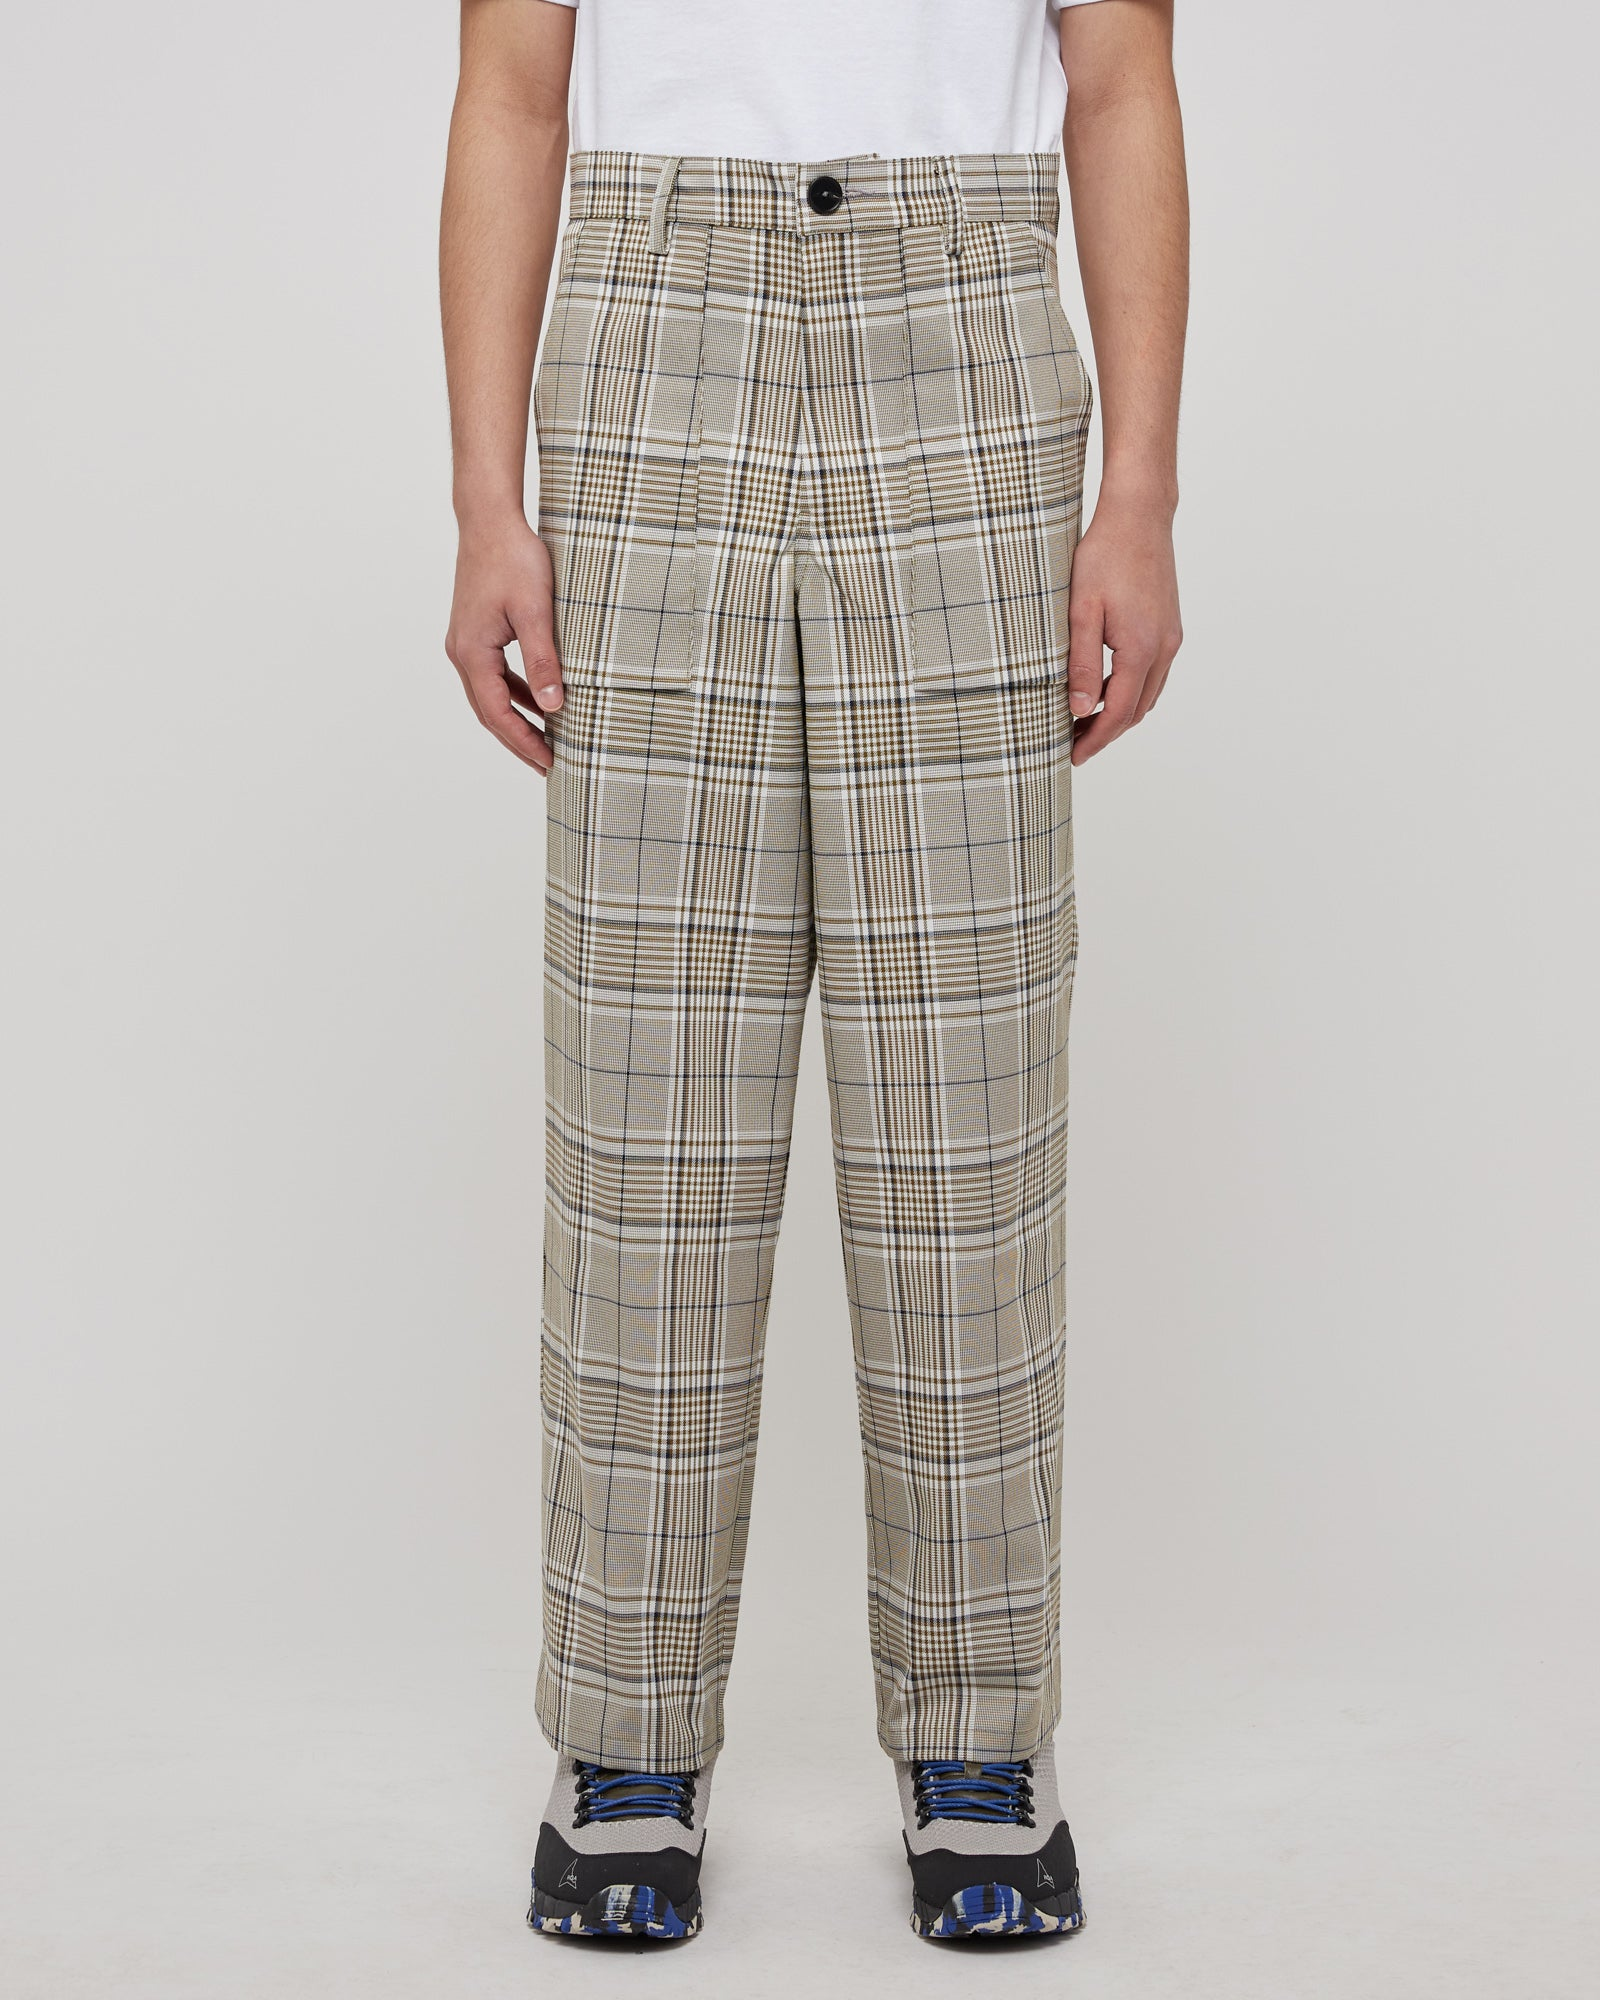 Grand Tour Pant in Army Plaid